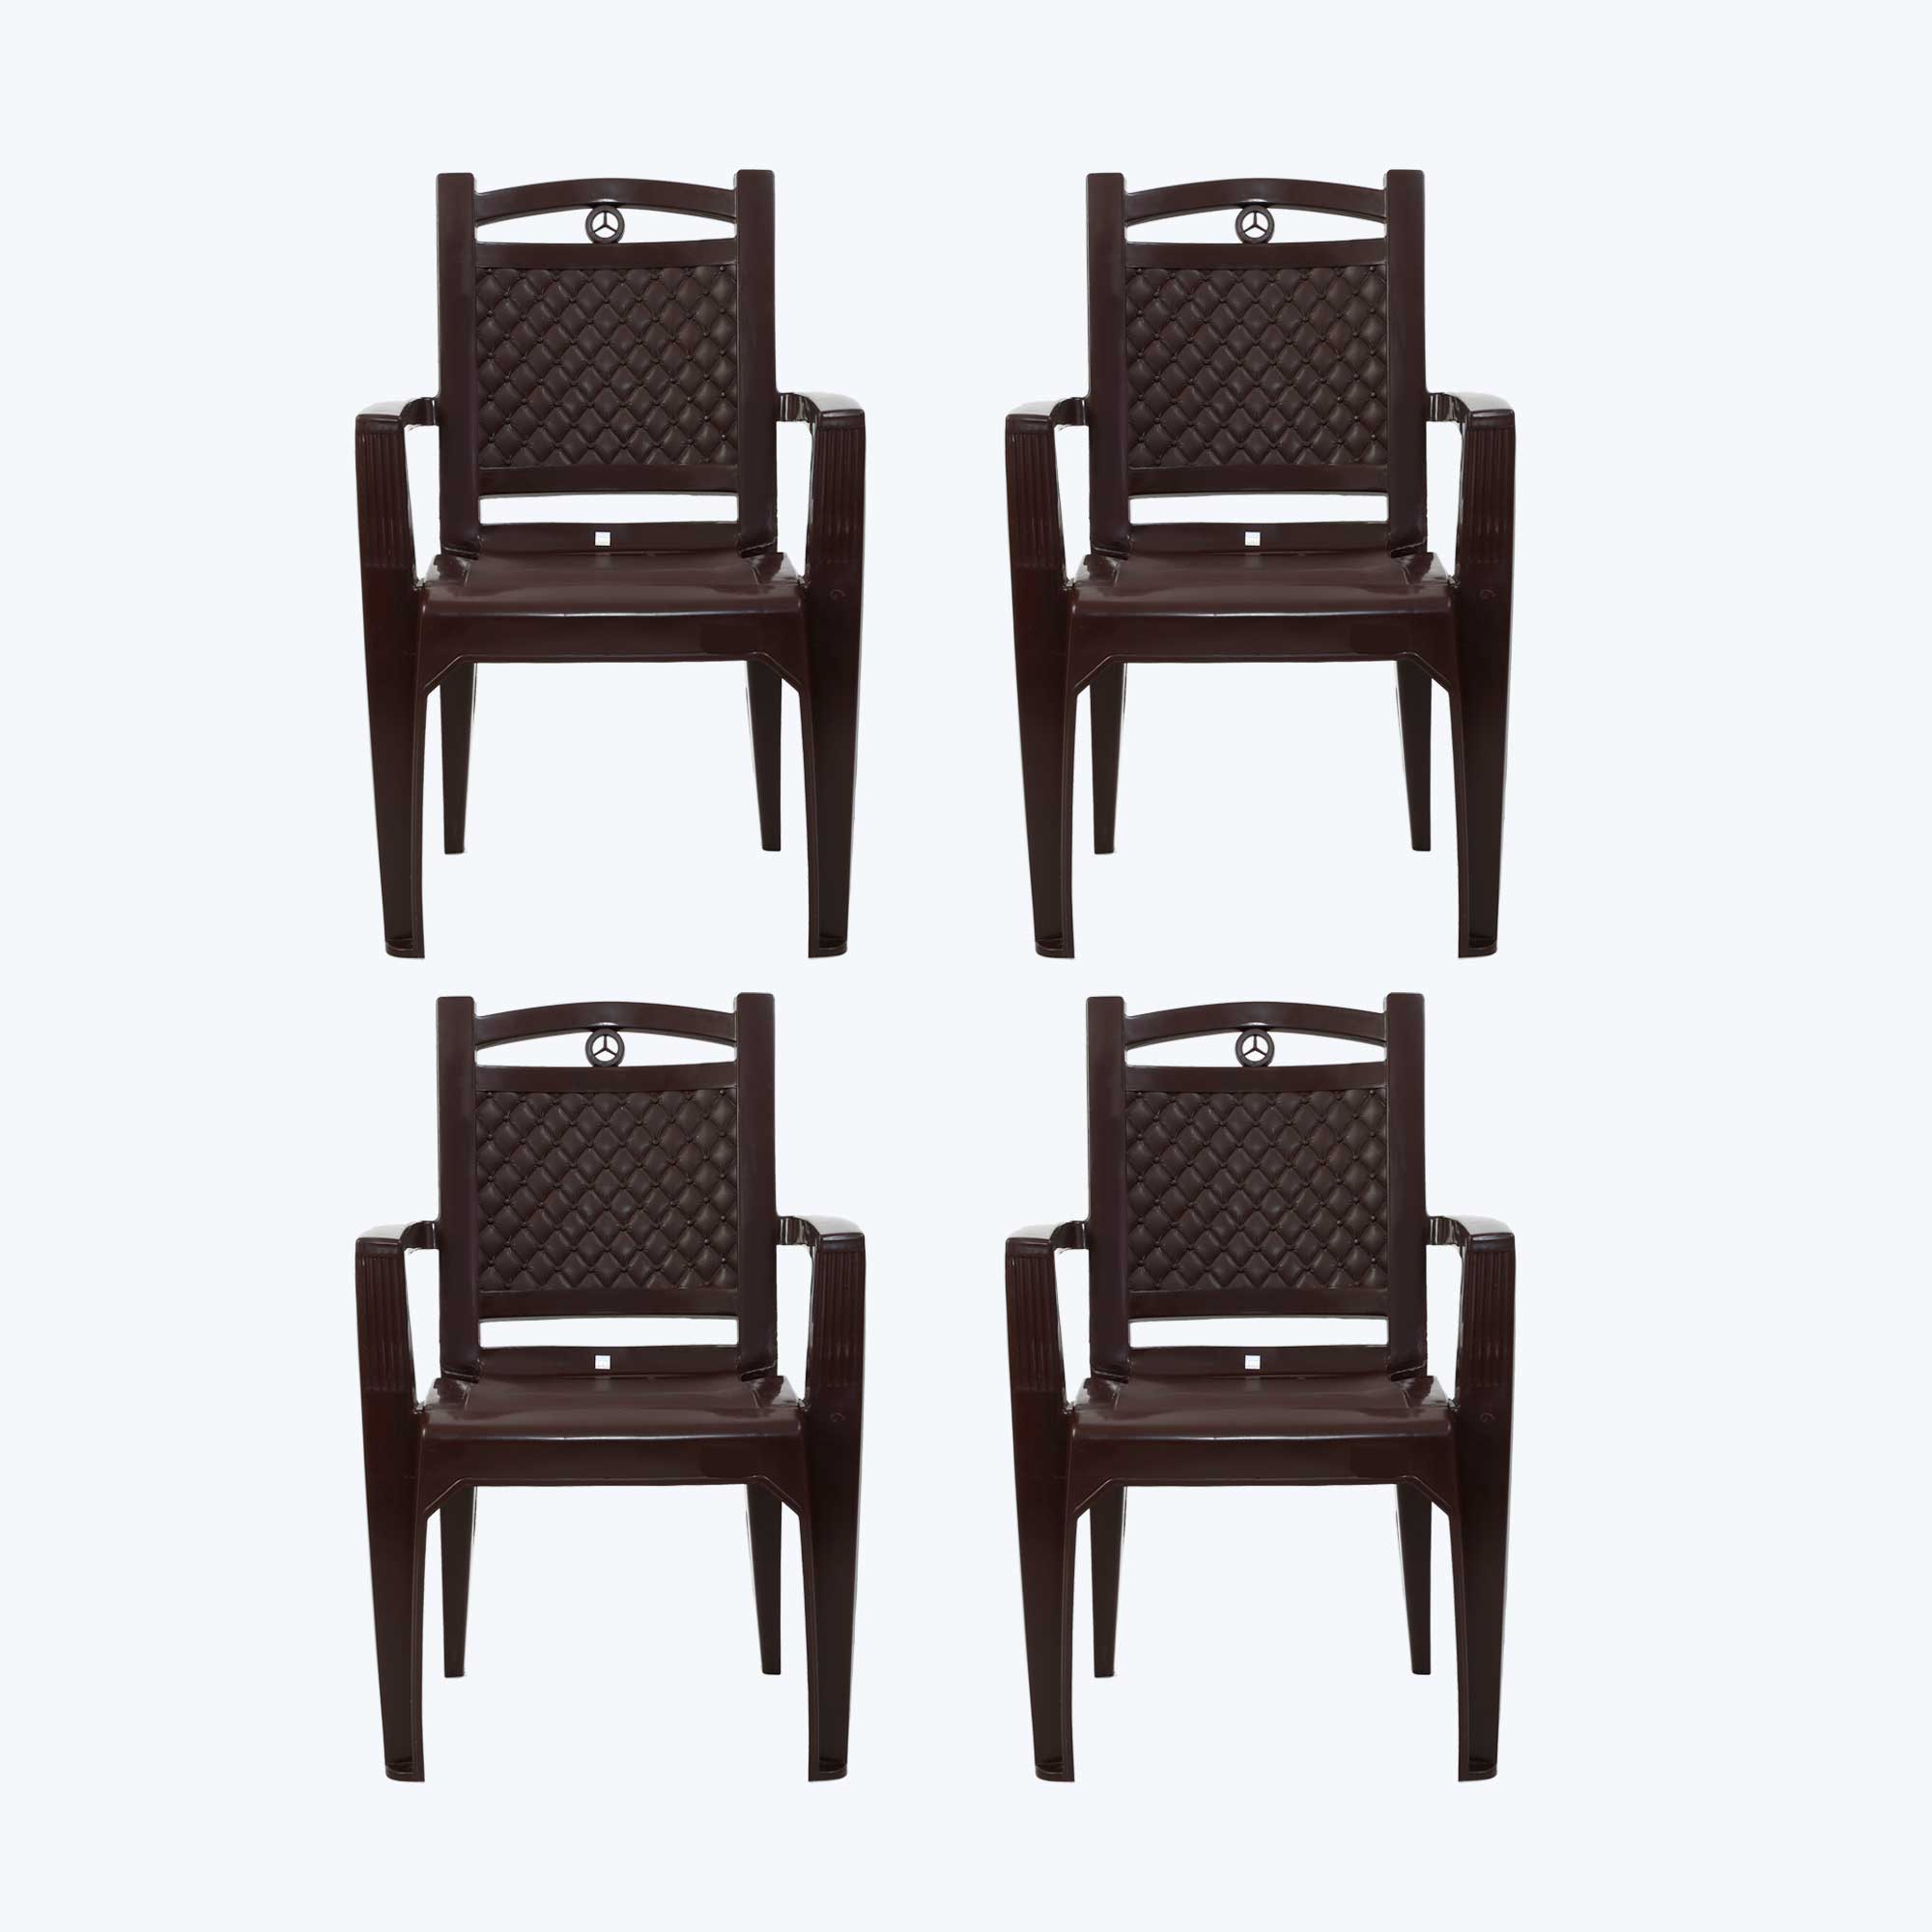 Heavy plastic chairs